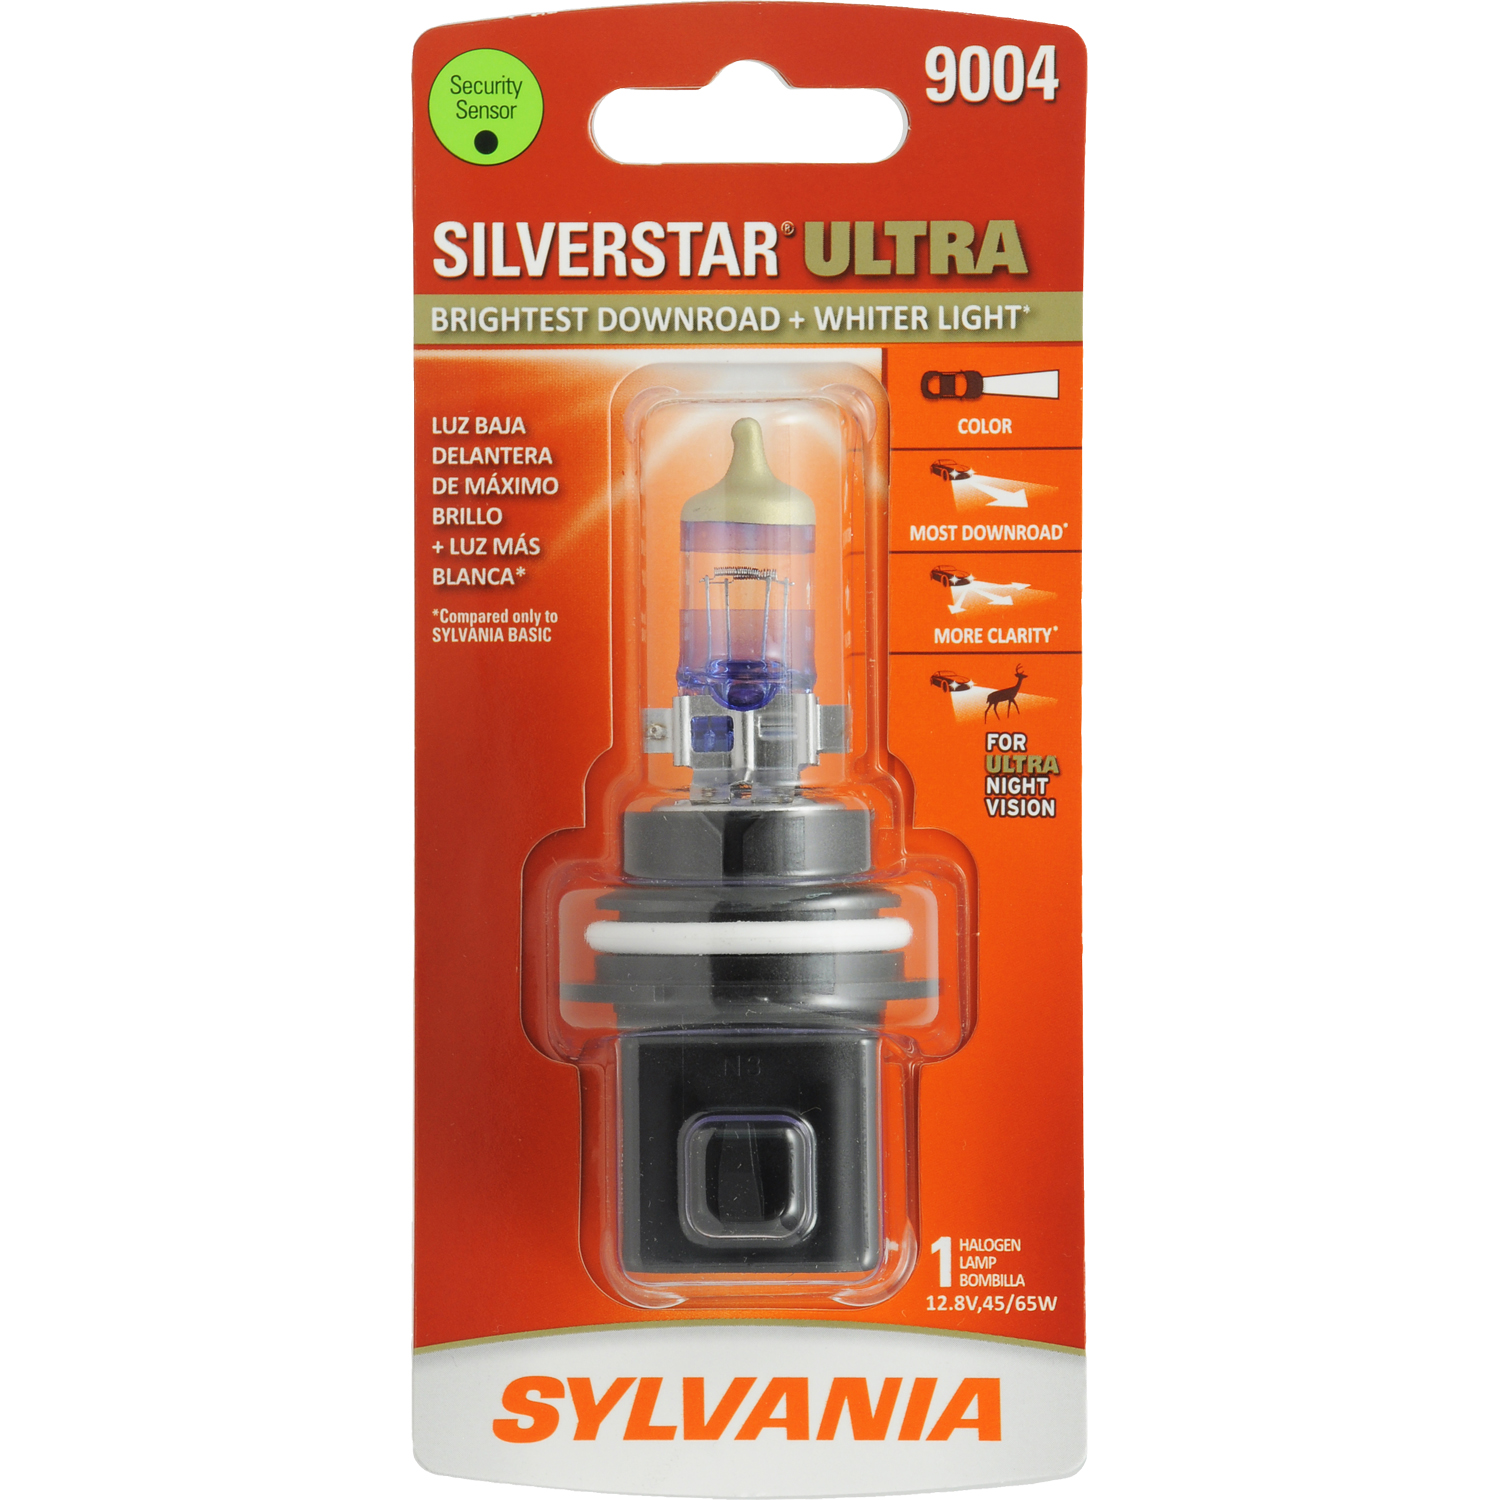 SYLVANIA 9004 SilverStar ULTRA Halogen Headlight Bulb, Pack of 1